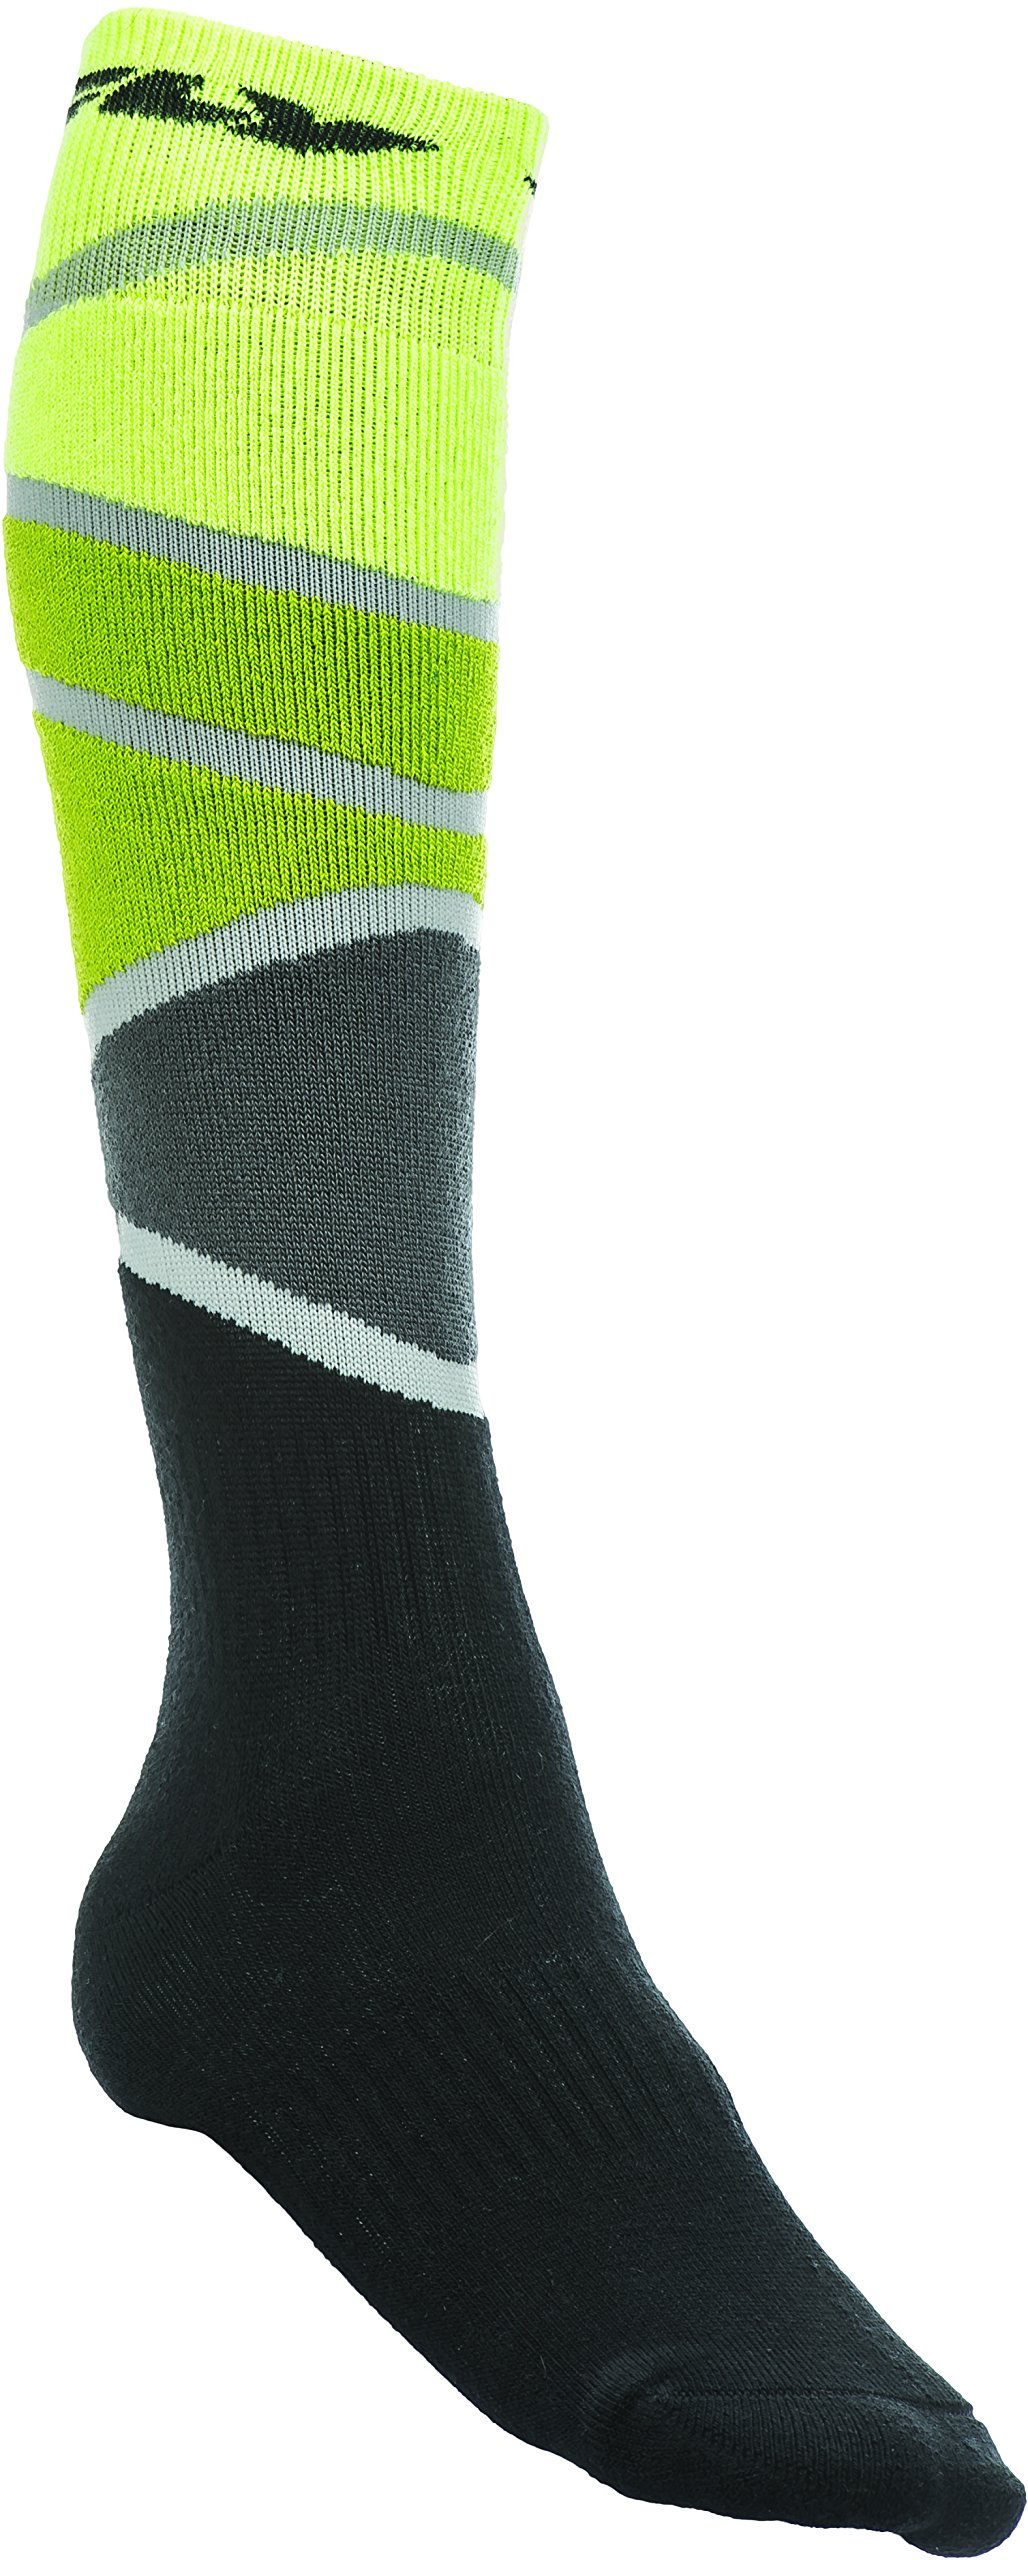 Fly Racing Unisex-Adult Mix Socks Thick (Lime/Green/Black, Small/Medium)